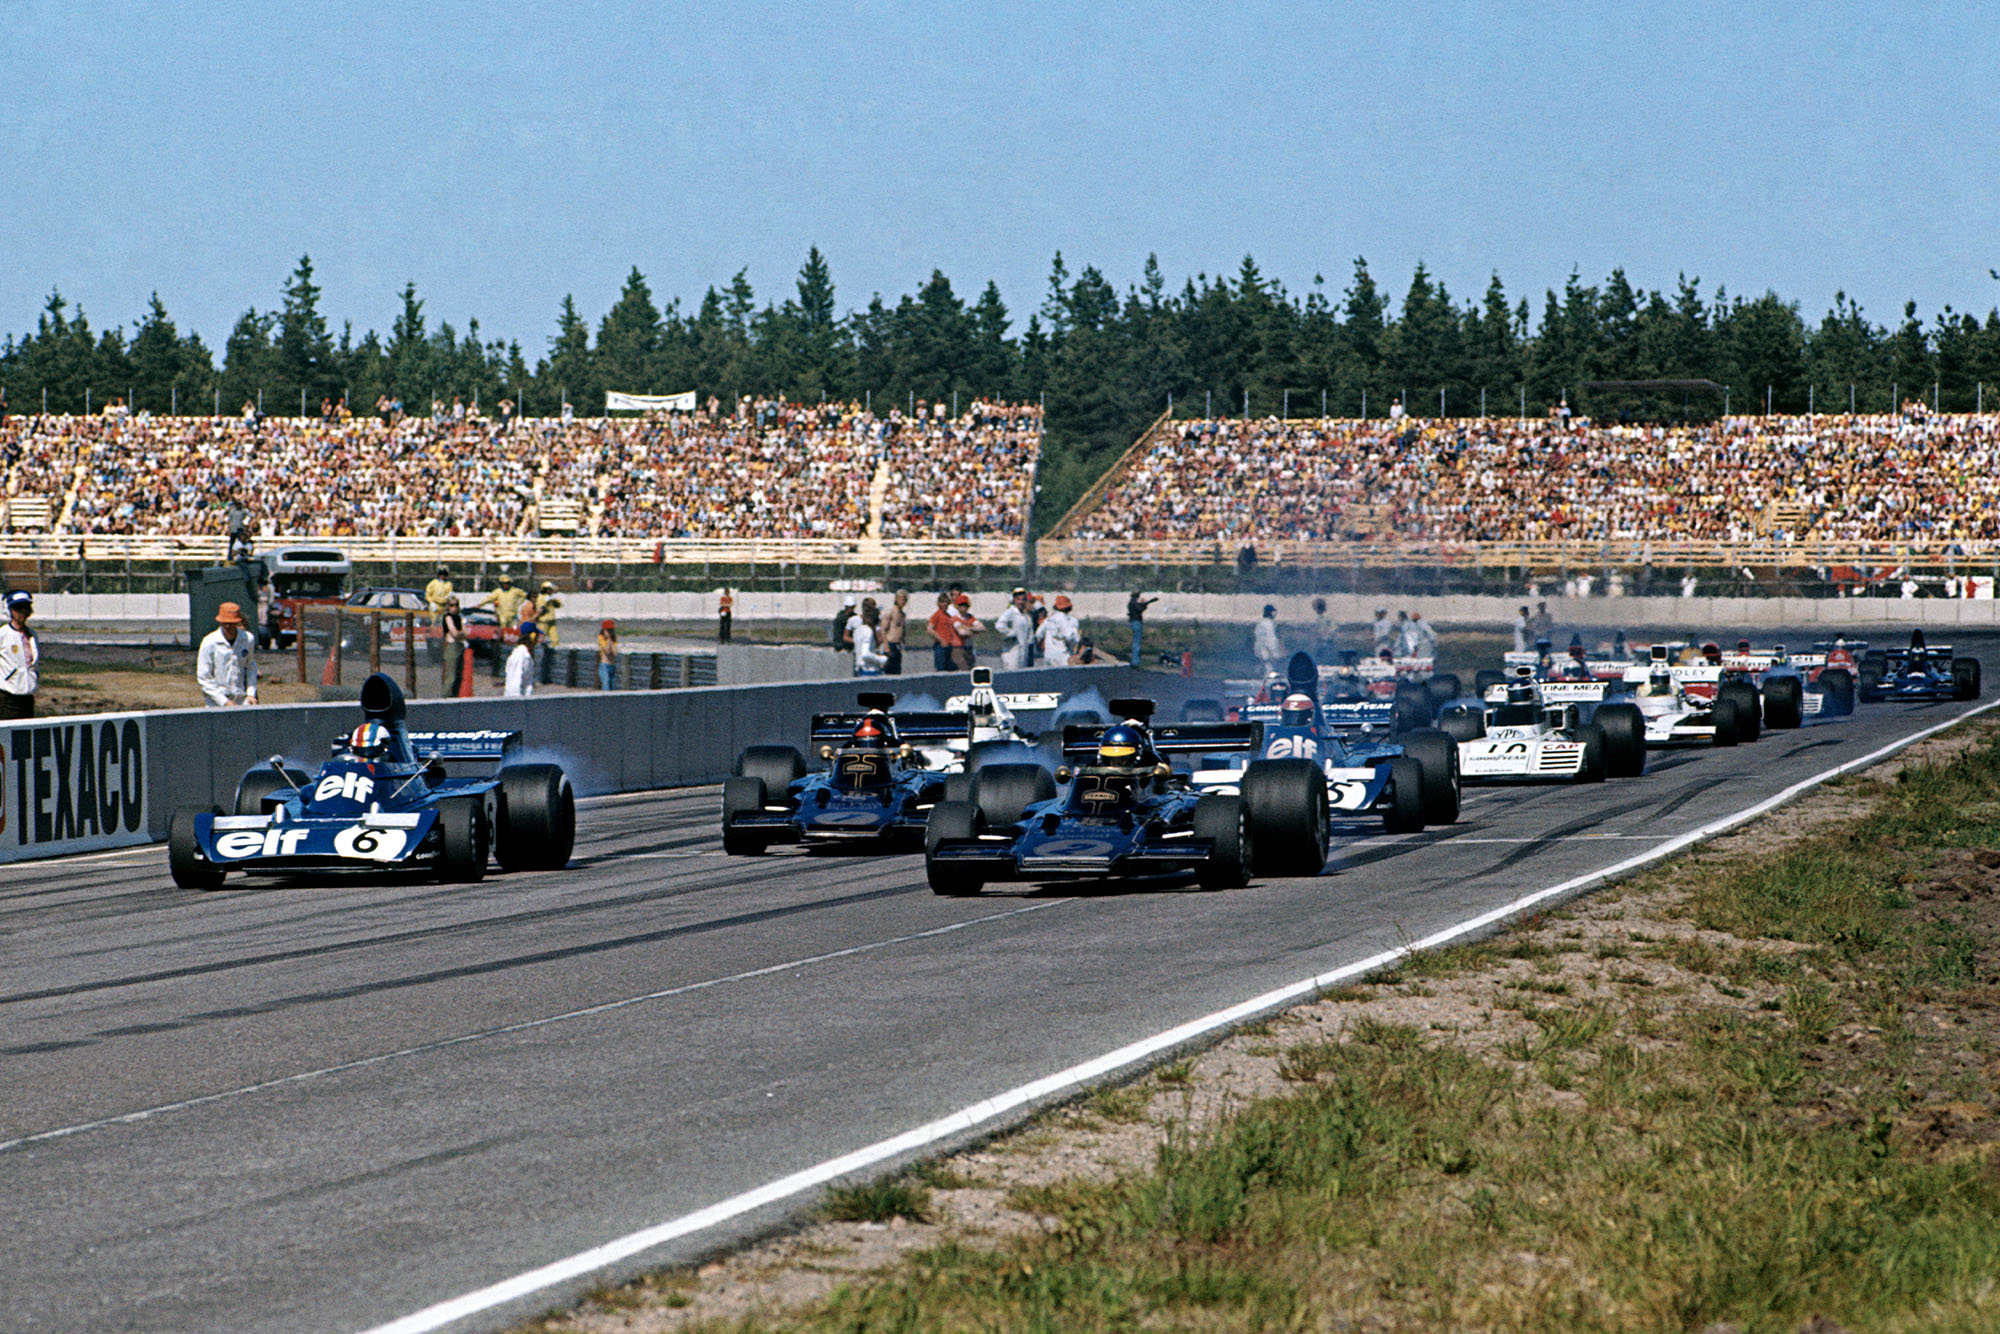 The 1973 Swedish Grand Prix gets underway as the cars leave the grid